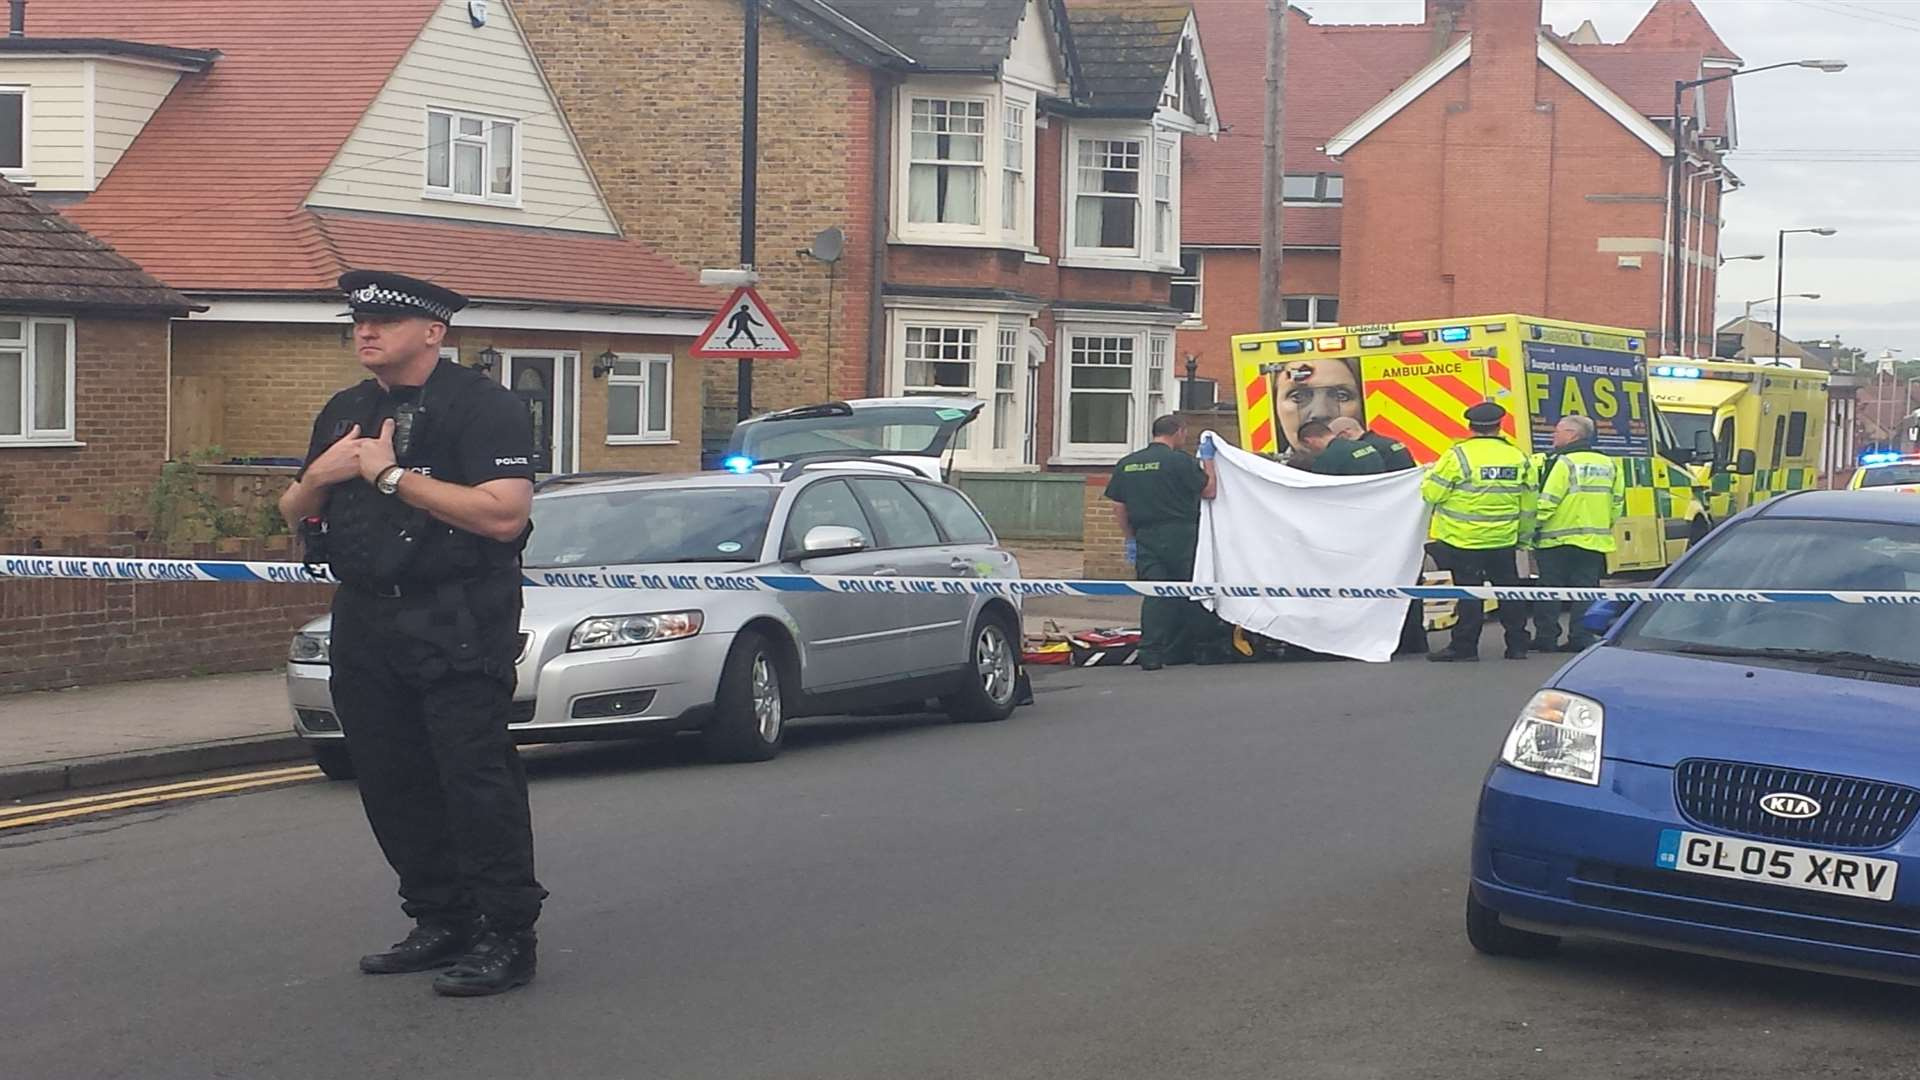 Police shut the road so the man could be treated